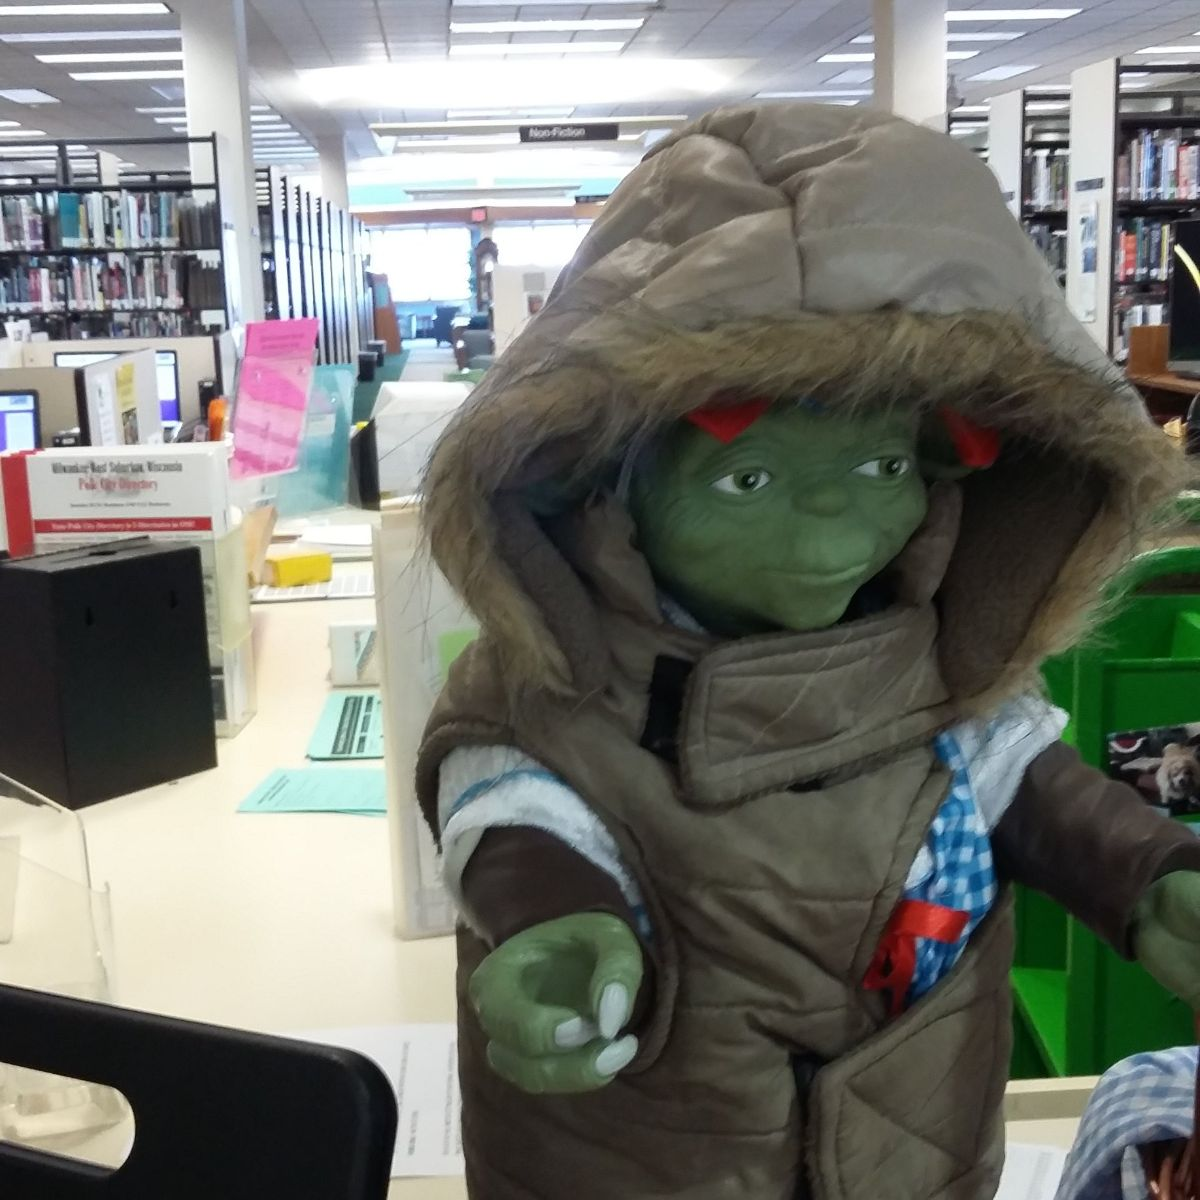 Yoda figurine doll with a little coat on